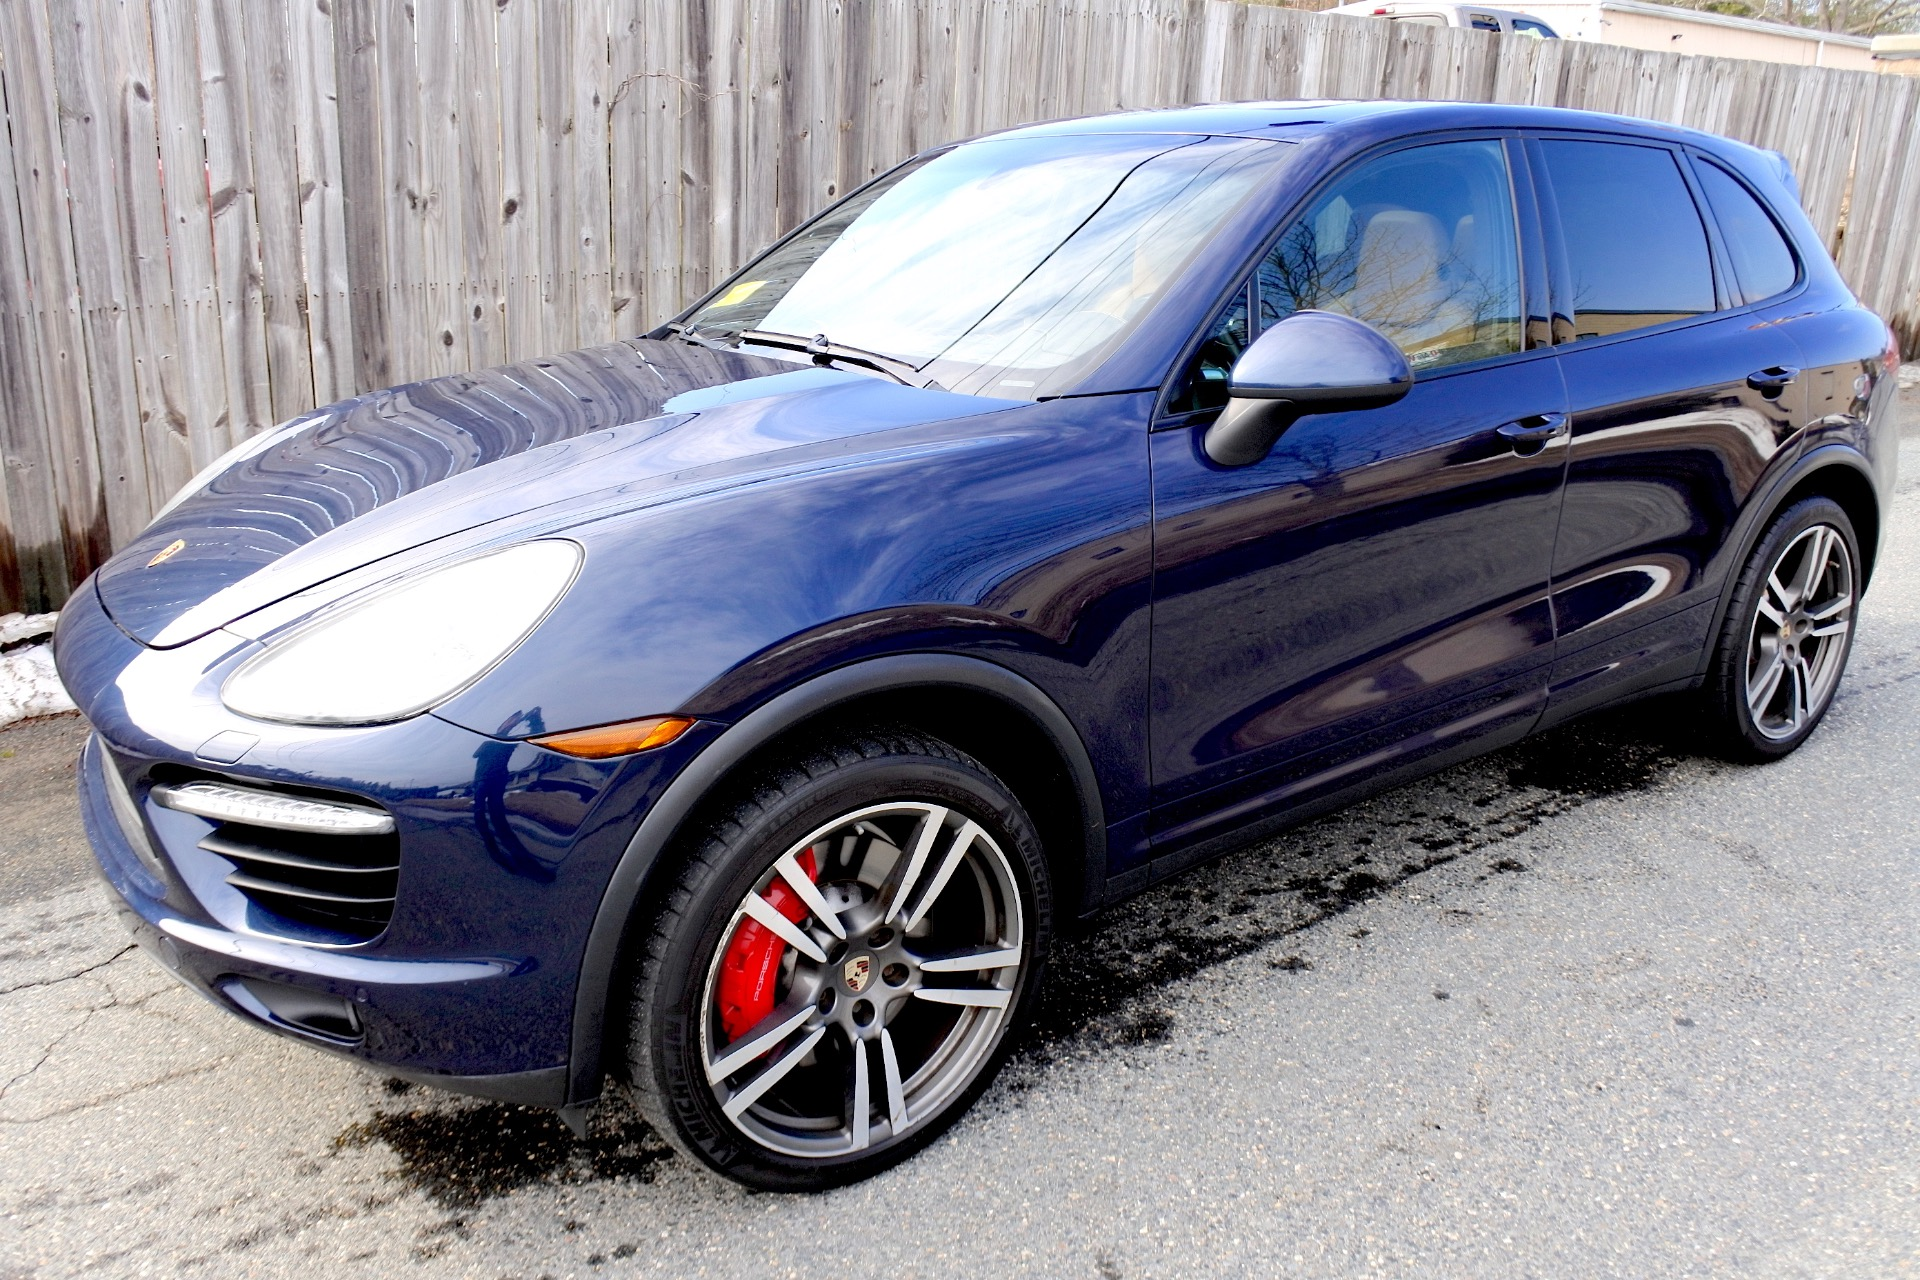 Used 2012 Porsche Cayenne AWD 4dr Turbo Used 2012 Porsche Cayenne AWD 4dr Turbo for sale  at Metro West Motorcars LLC in Shrewsbury MA 1